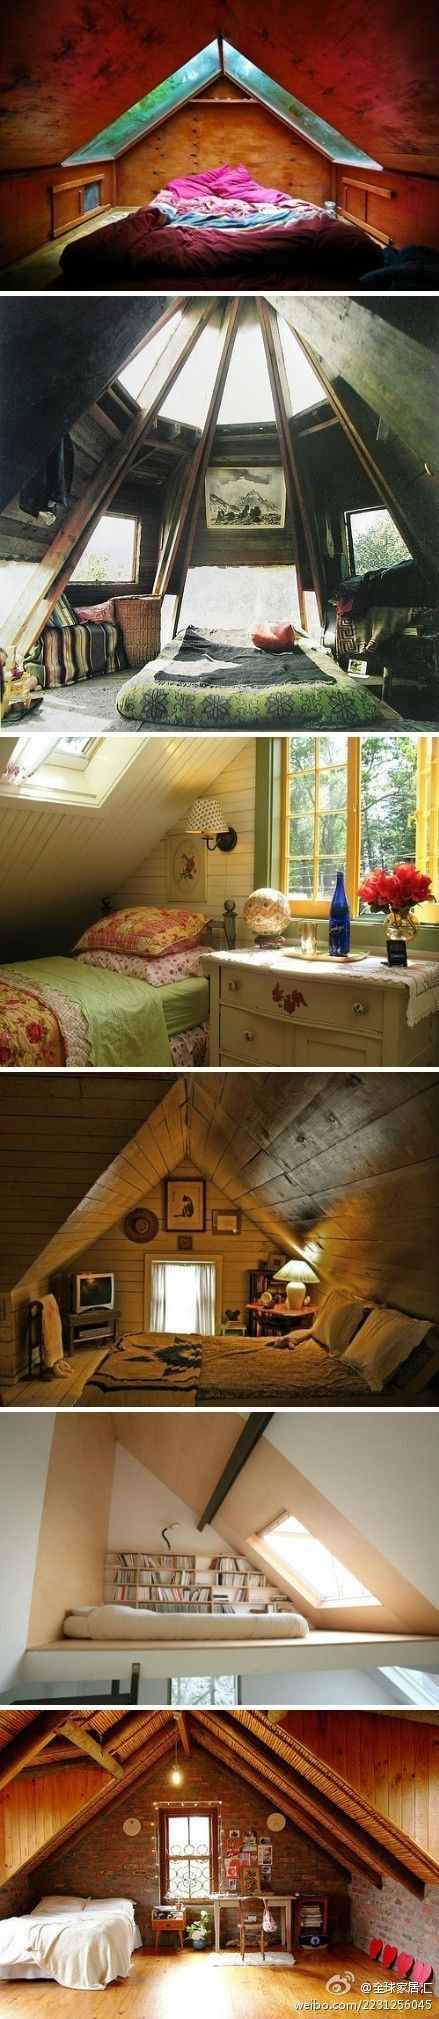 Don't worry you don't always need a boring attic have one of these! These are great places to go and read in, or maybe even take a nice nap!